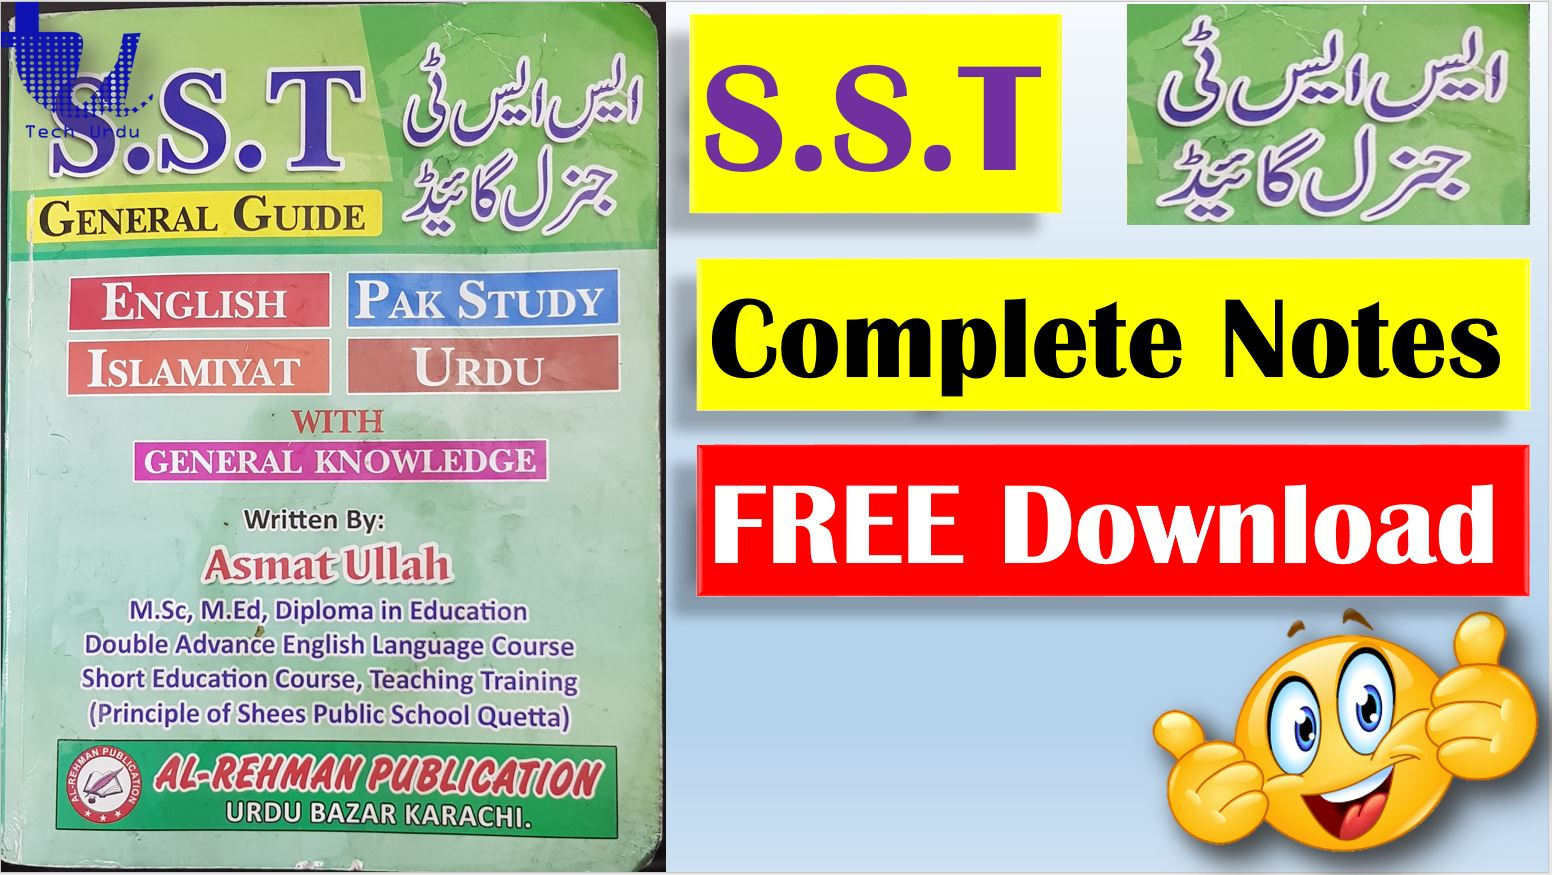 S.S.T General Guide (FREE Download) Complete Book